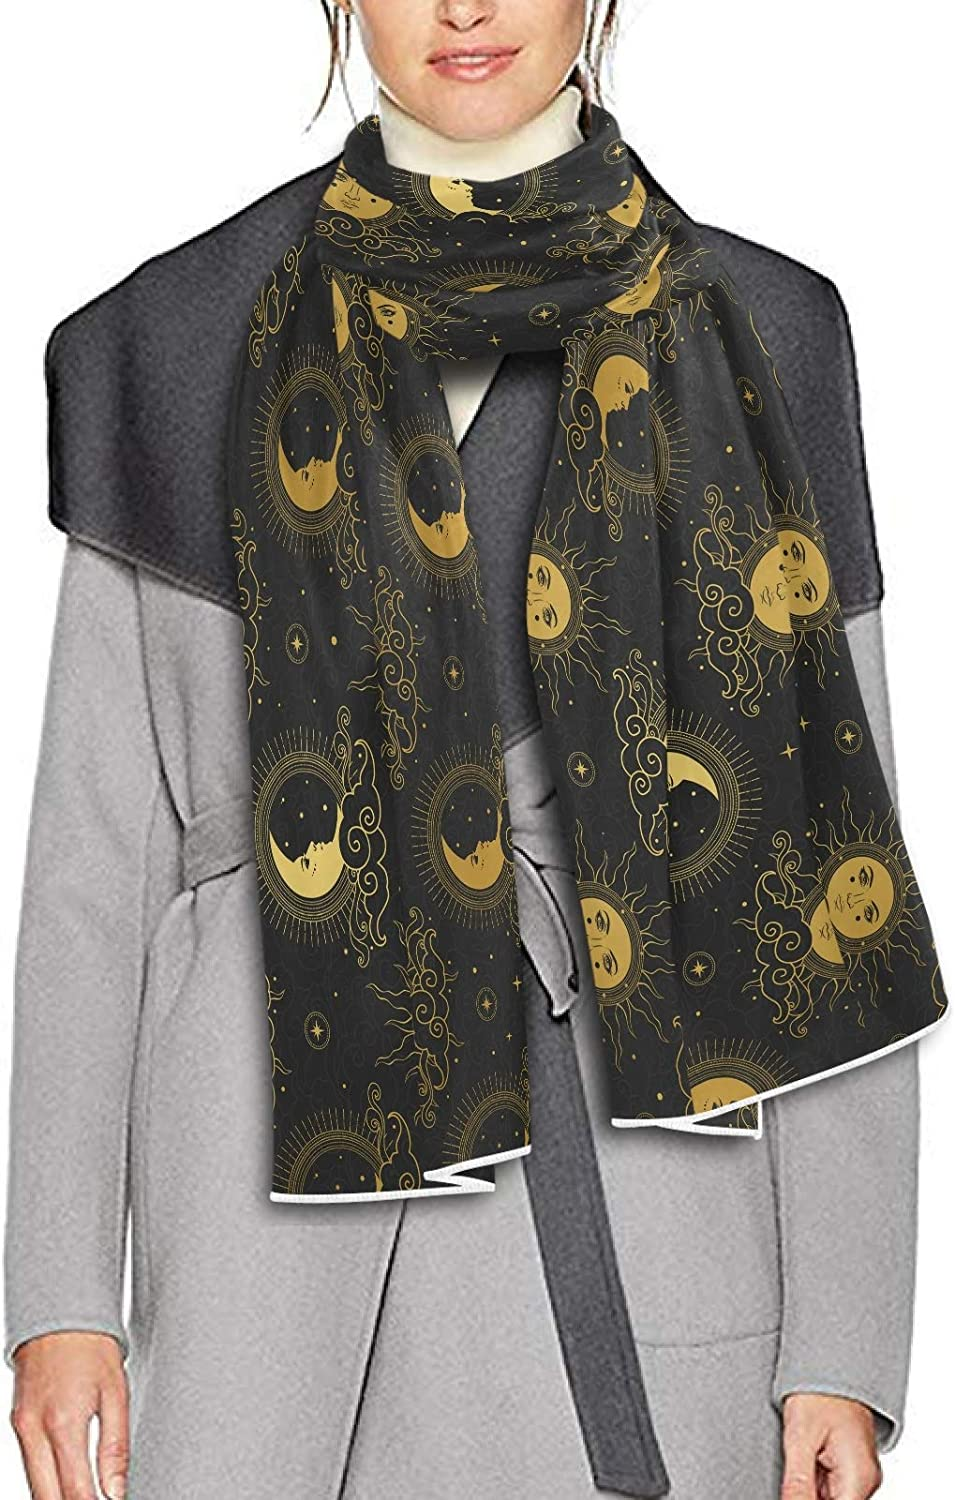 Scarf for Women and Men Sun Moon Starry Sky Black Night Blanket Shawl Scarves Wraps Warm soft Winter Oversized Scarves Lightweight